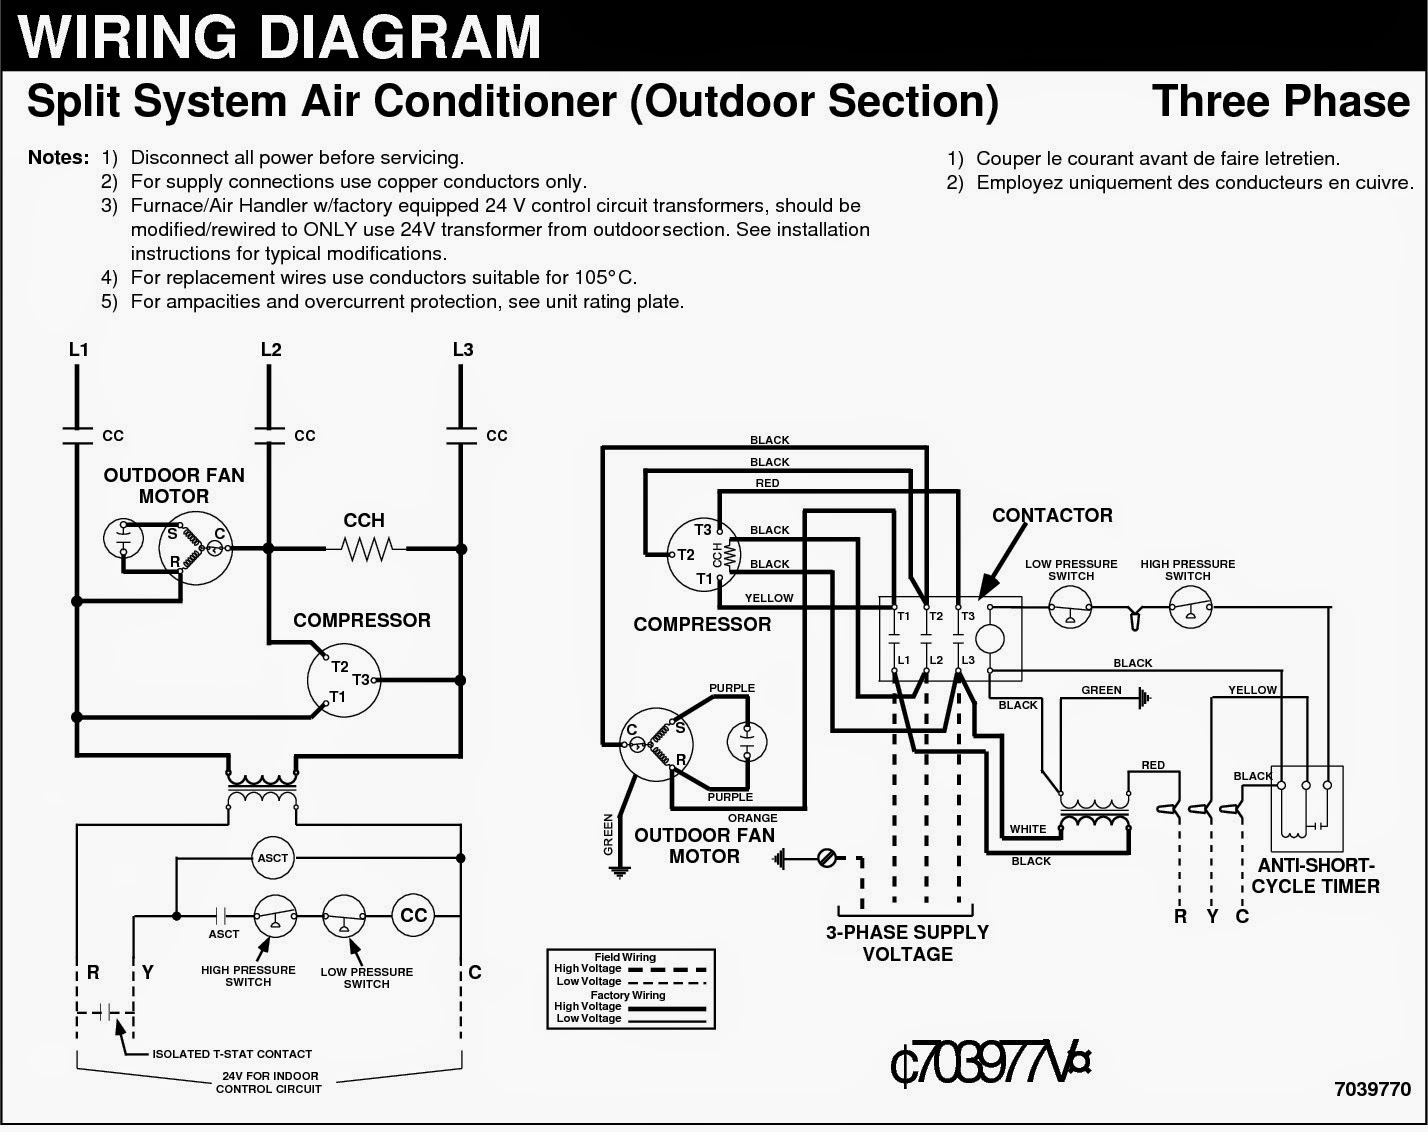 3+phase electrical wiring diagrams for air conditioning systems part two car ac wiring diagram at gsmportal.co